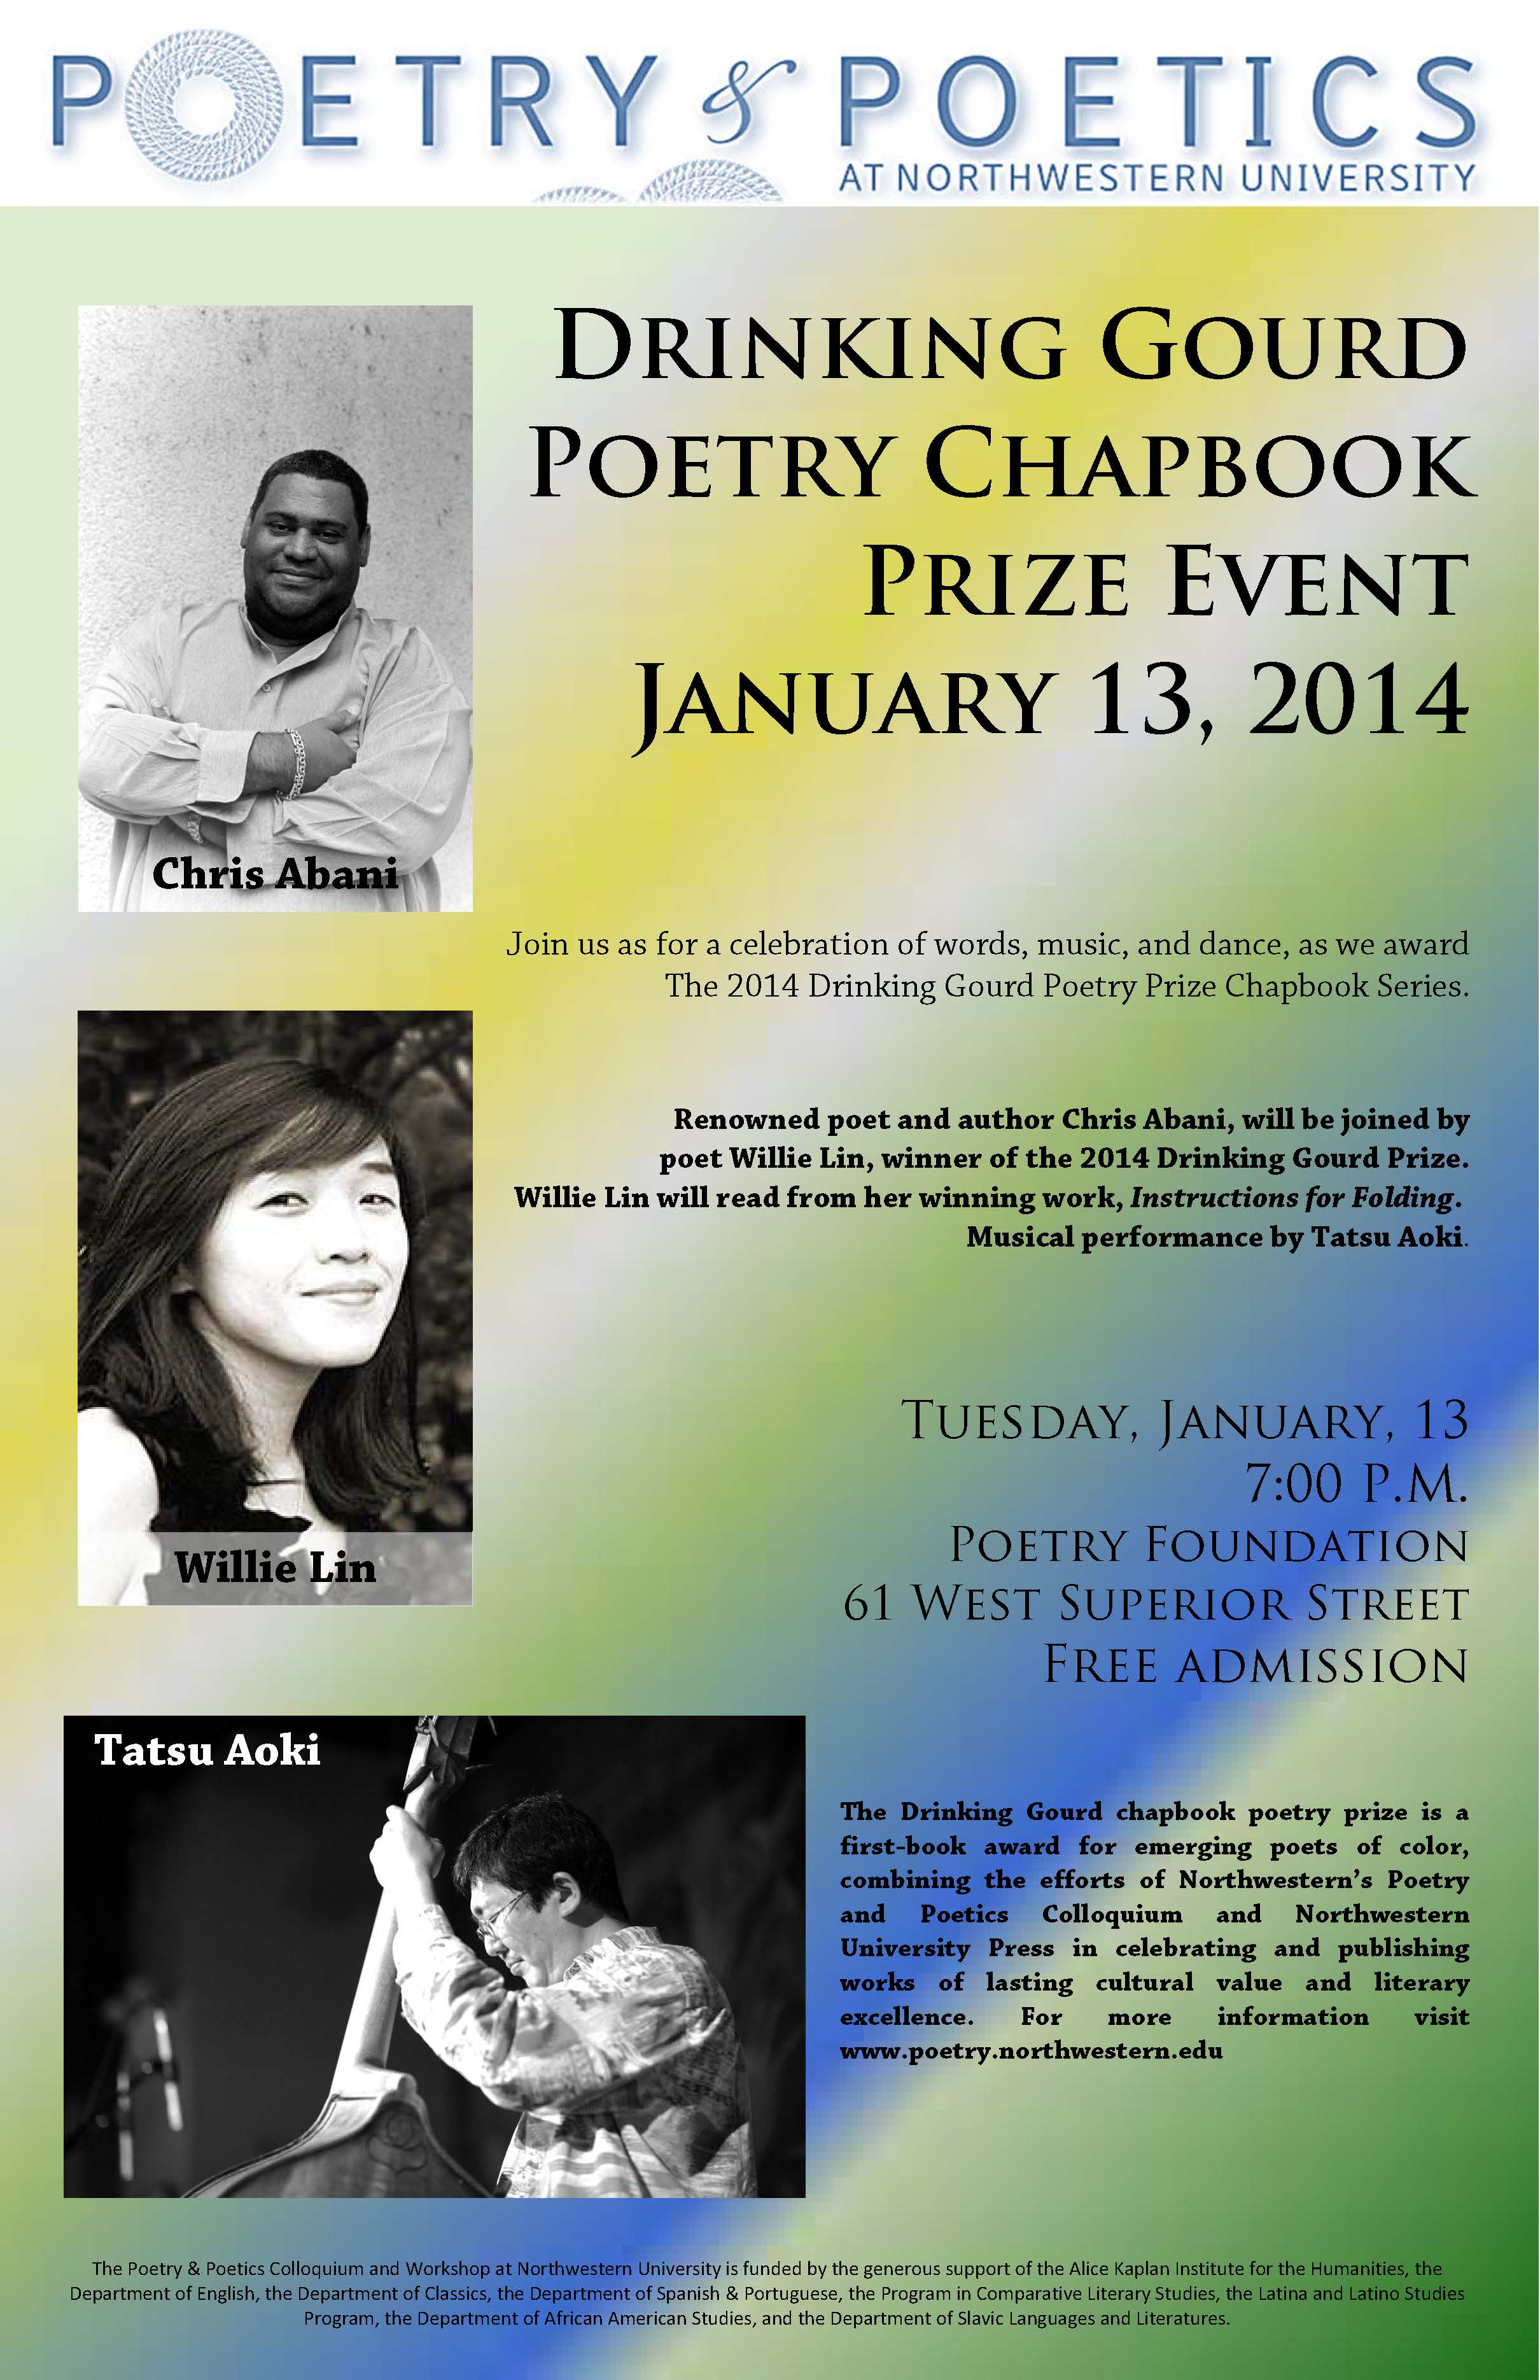 The Poetry And Poetics Colloquium At Northwestern